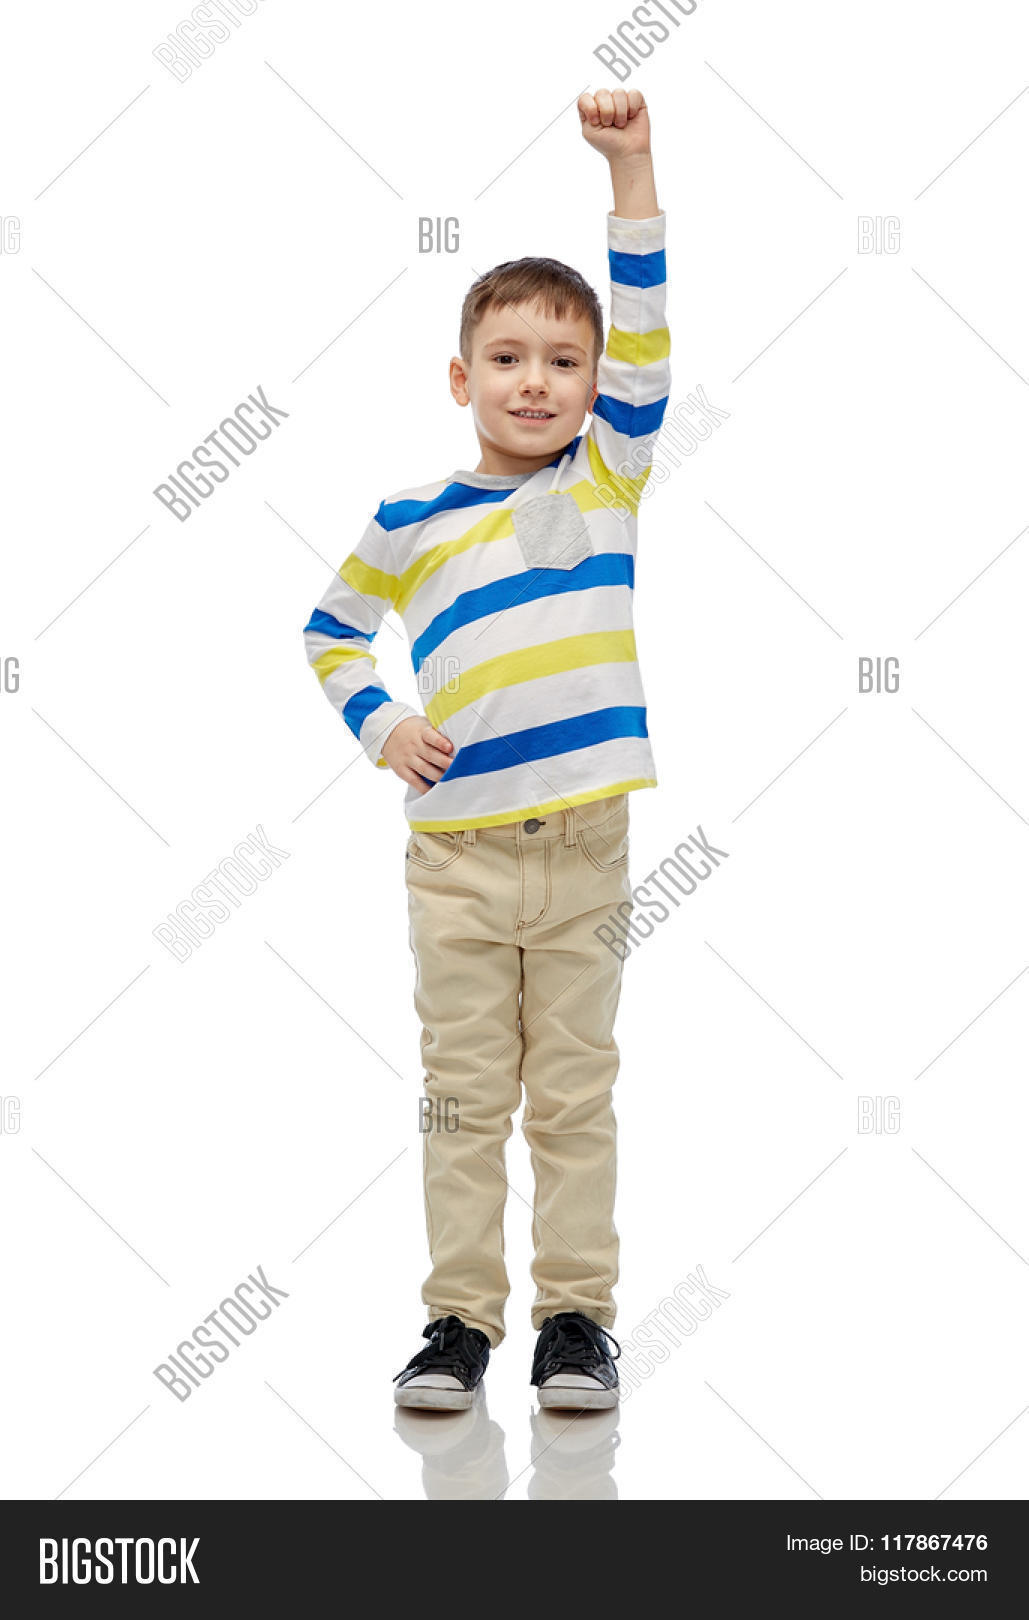 711365bdc4bf9 childhood, power, gesture and people concept - happy smiling little boy  with raised hand